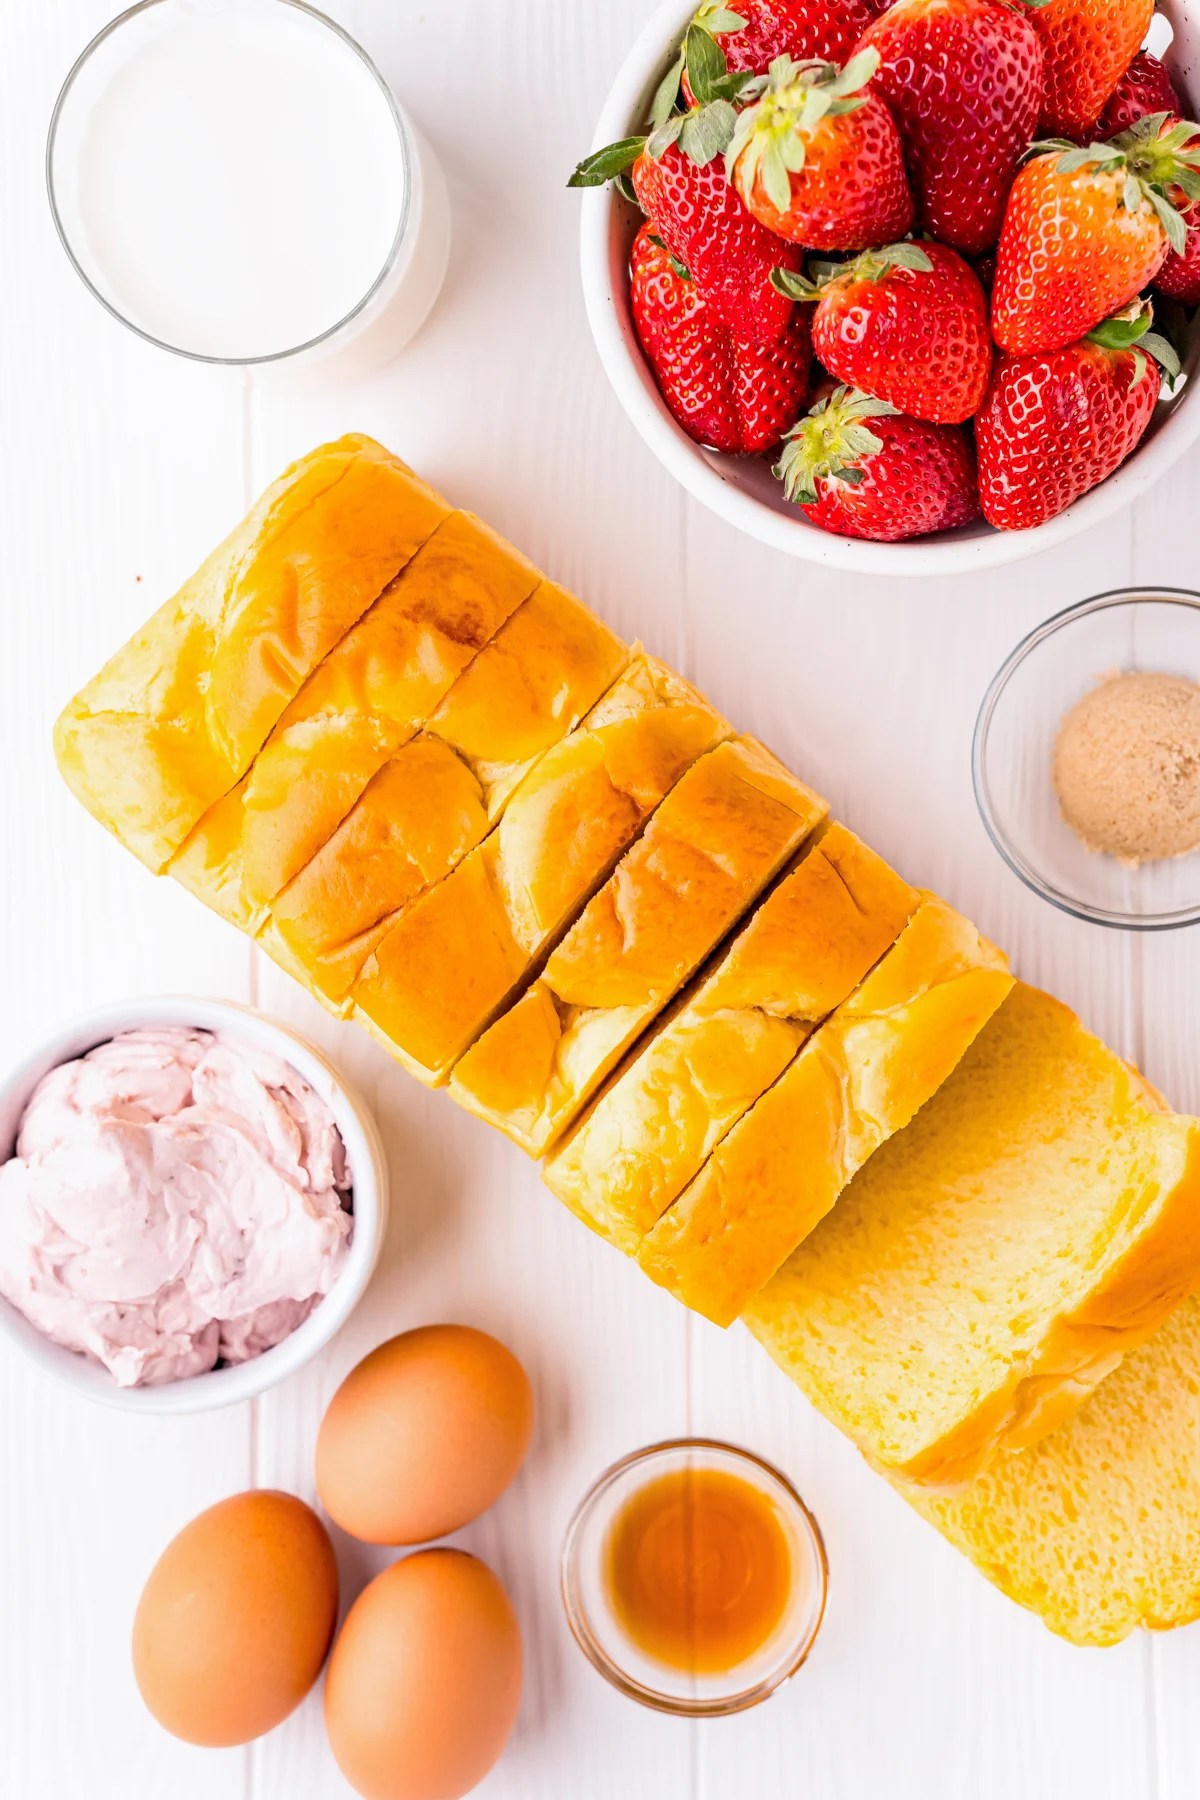 Ingredients needed to make Strawberry Cheesecake Stuffed French Toast